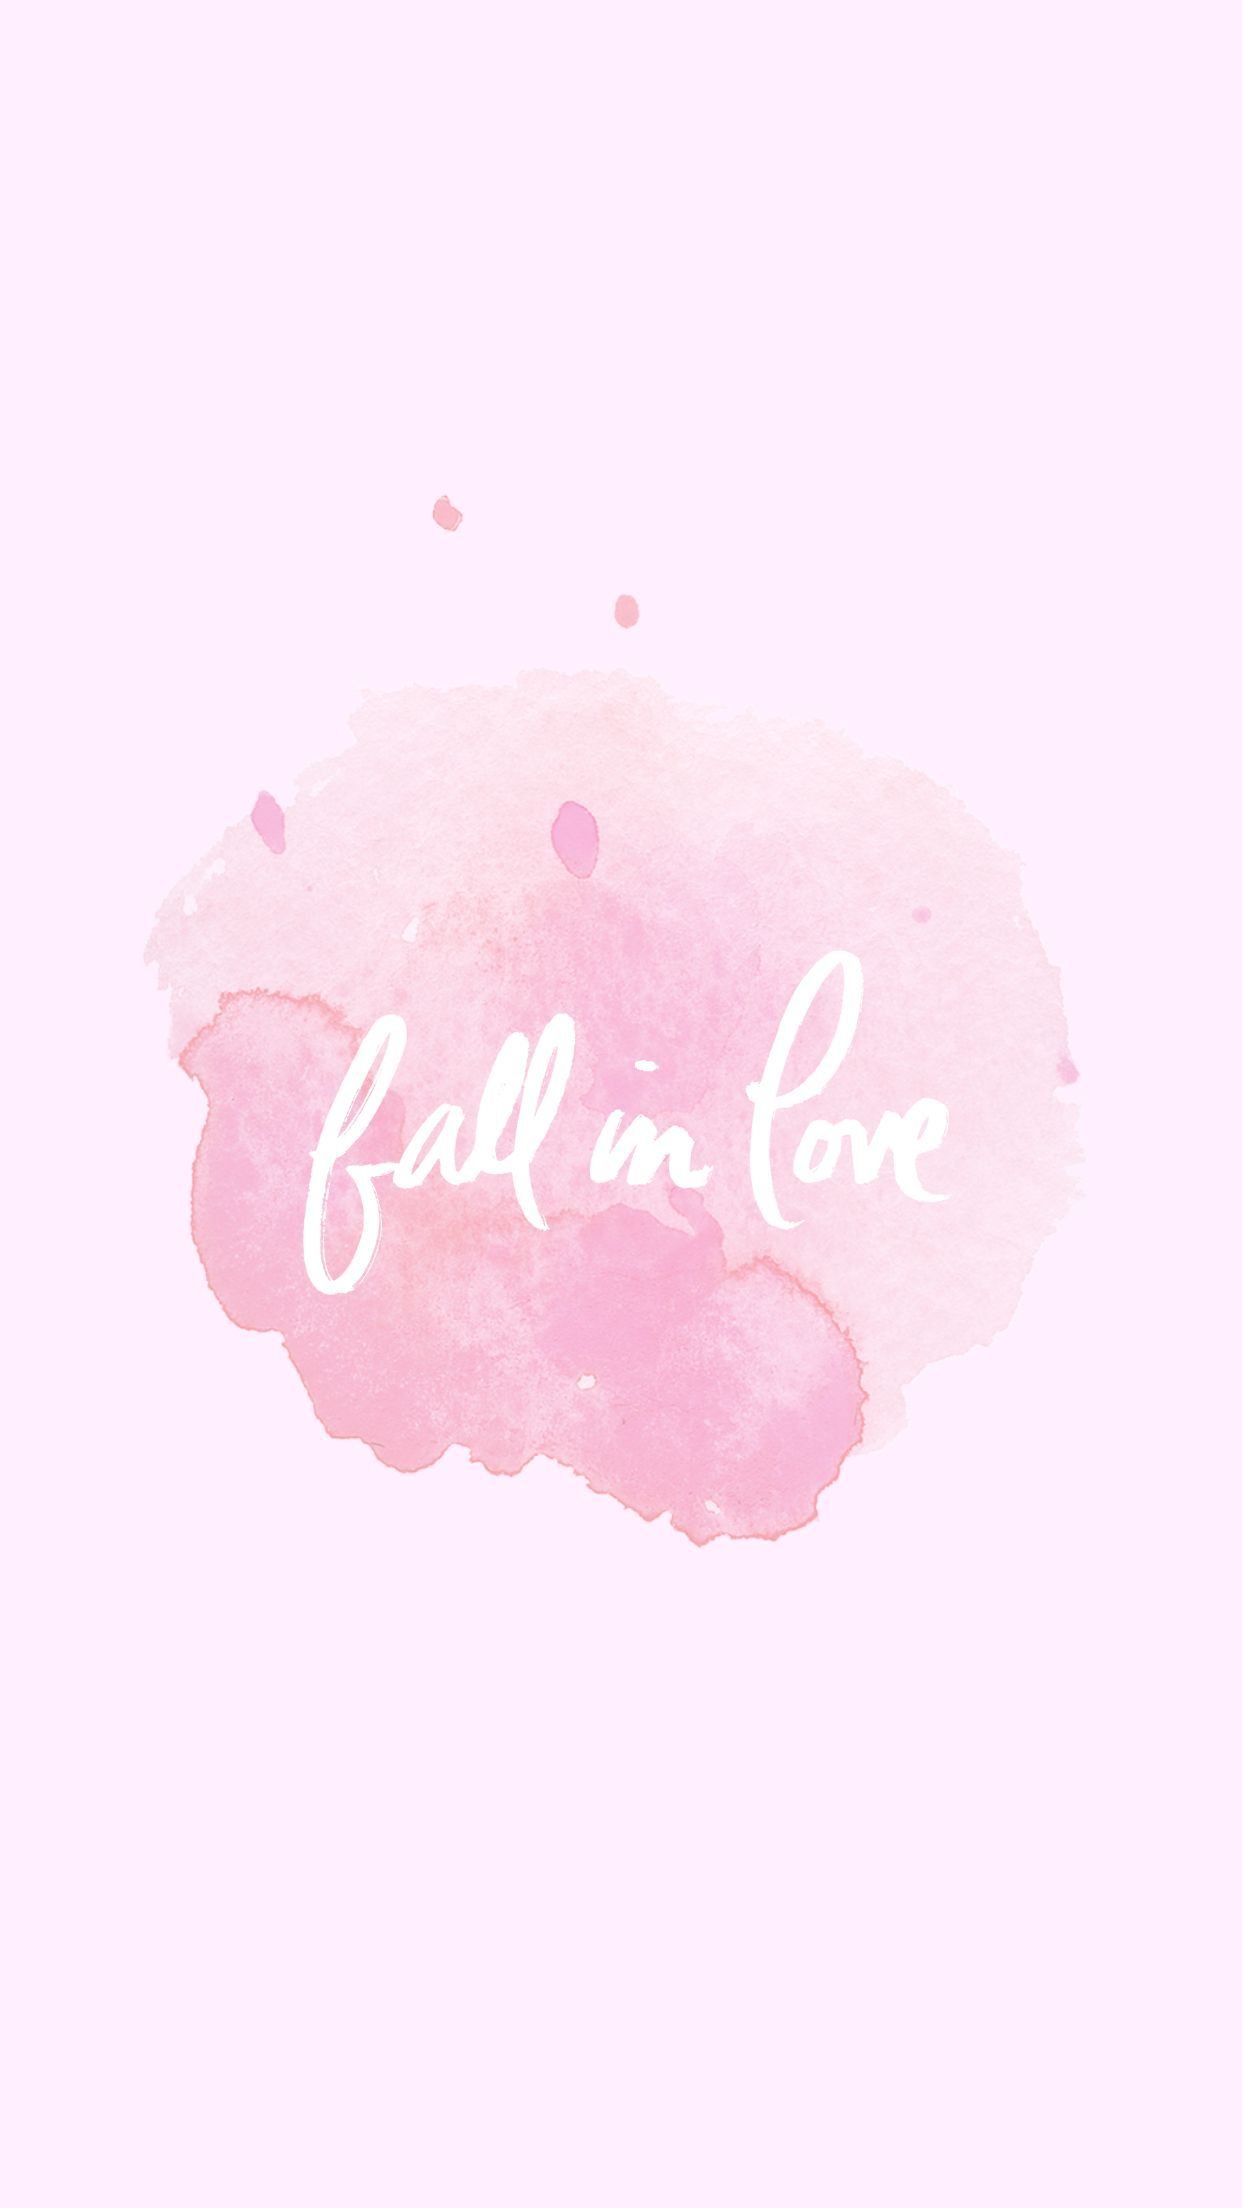 1242x2208 Fall in love pastel pink watercolour phone wallpaper | Phone ...